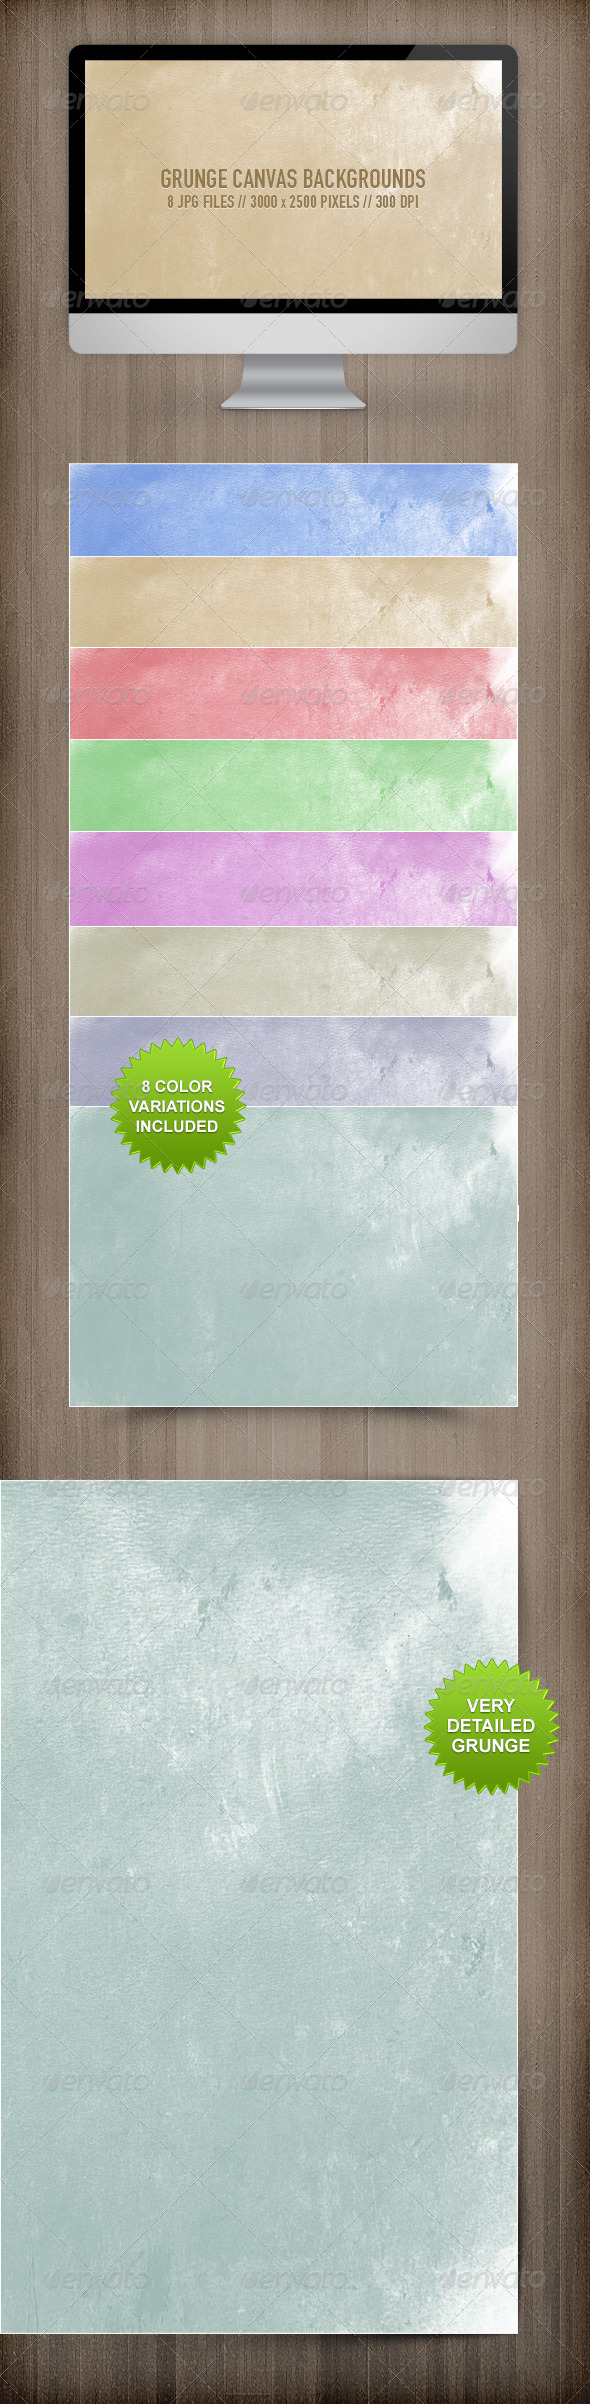 GraphicRiver Grunge Canvas Backgrounds 6188725